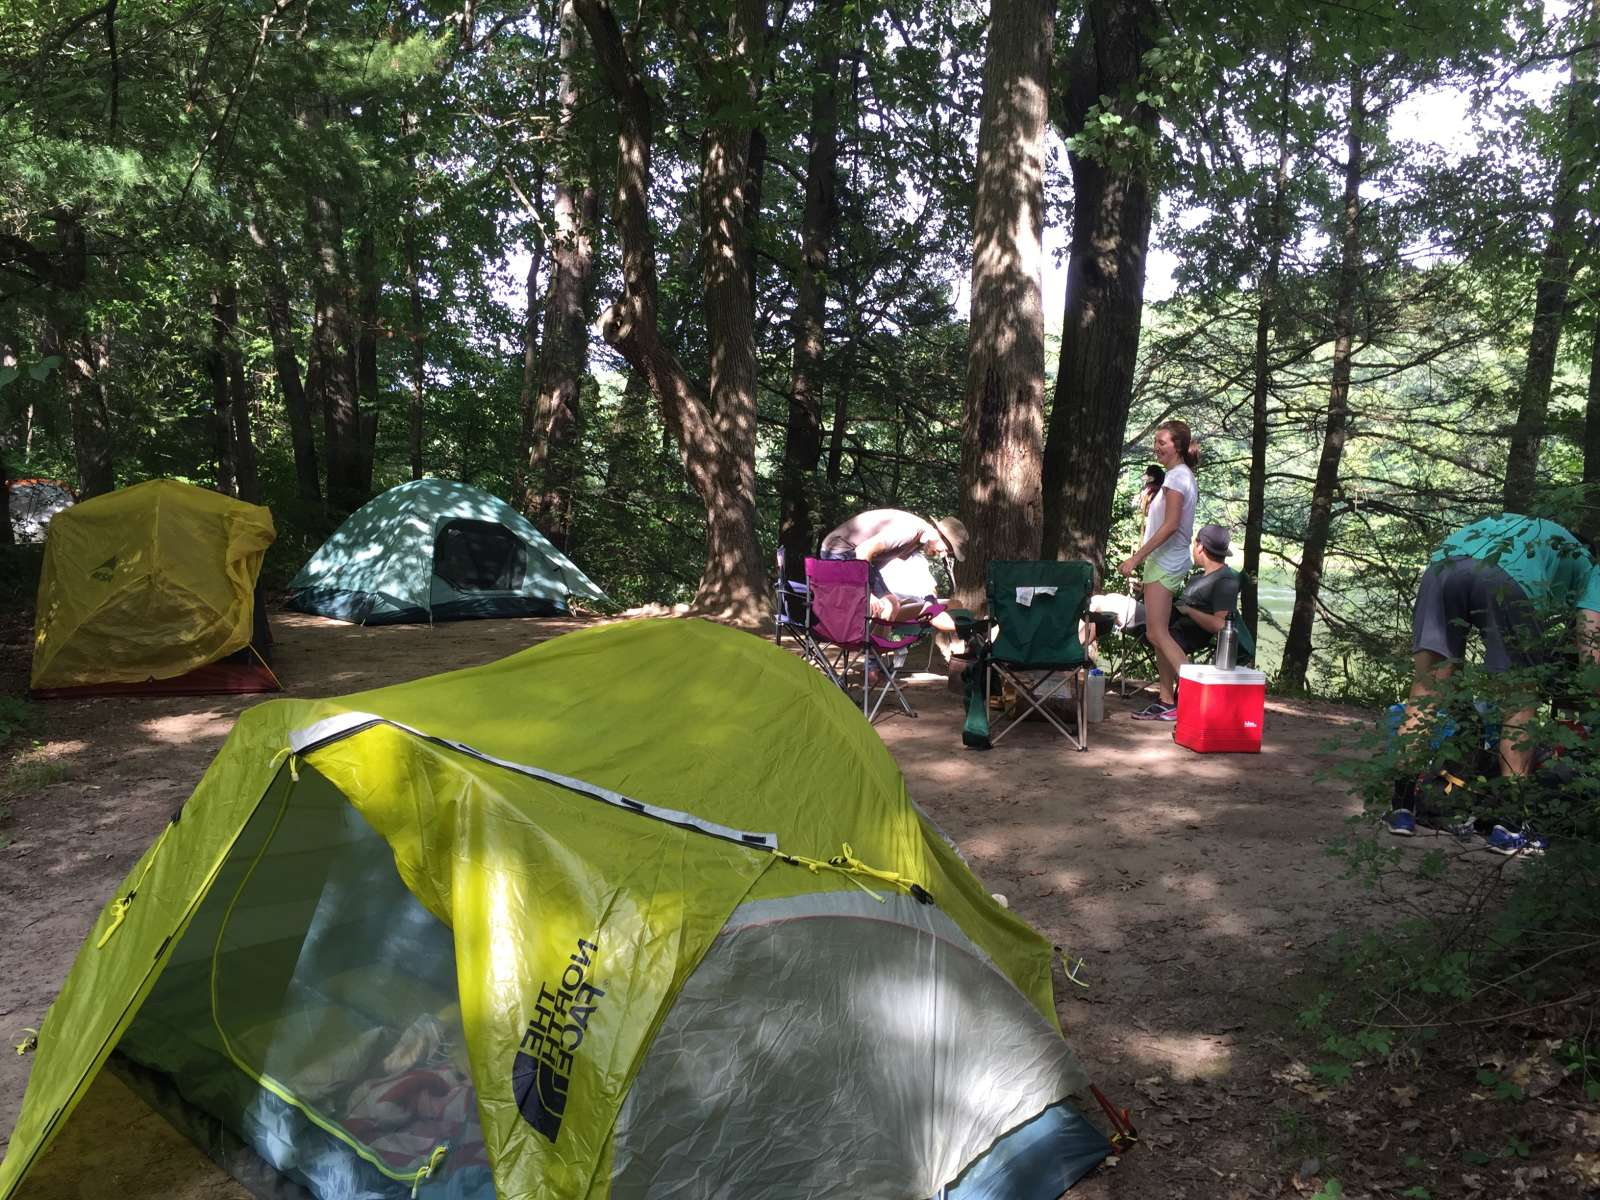 Dingmans Campground Delaware Water Gap Pa 5 Hipcamper Reviews And 18 Photos